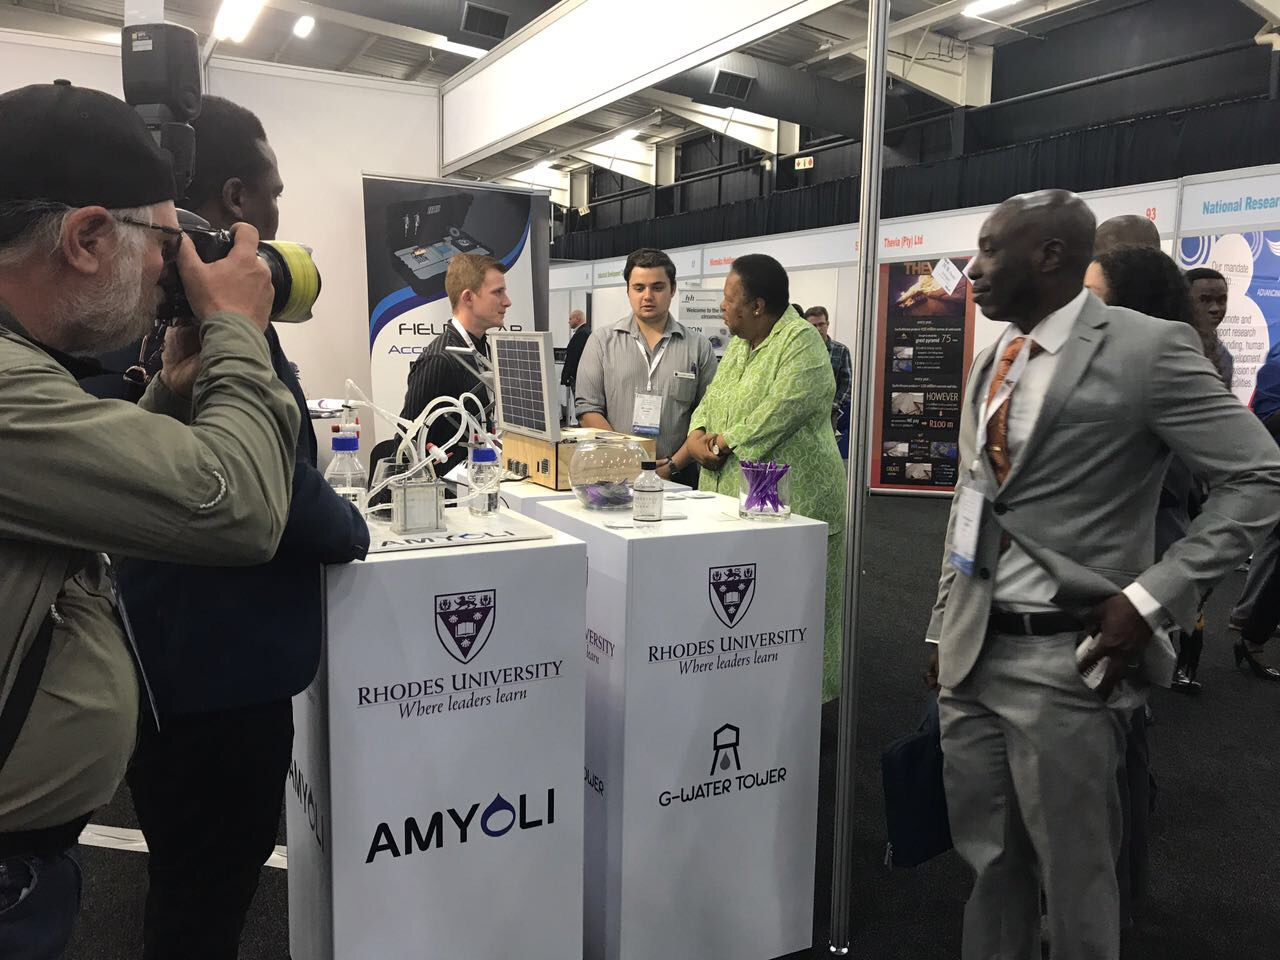 Field Lab at Innovation Bridge 2017 - Minister Naledi Pandor, Charles Faul, Lucas Lotter - Discussing Field Lab